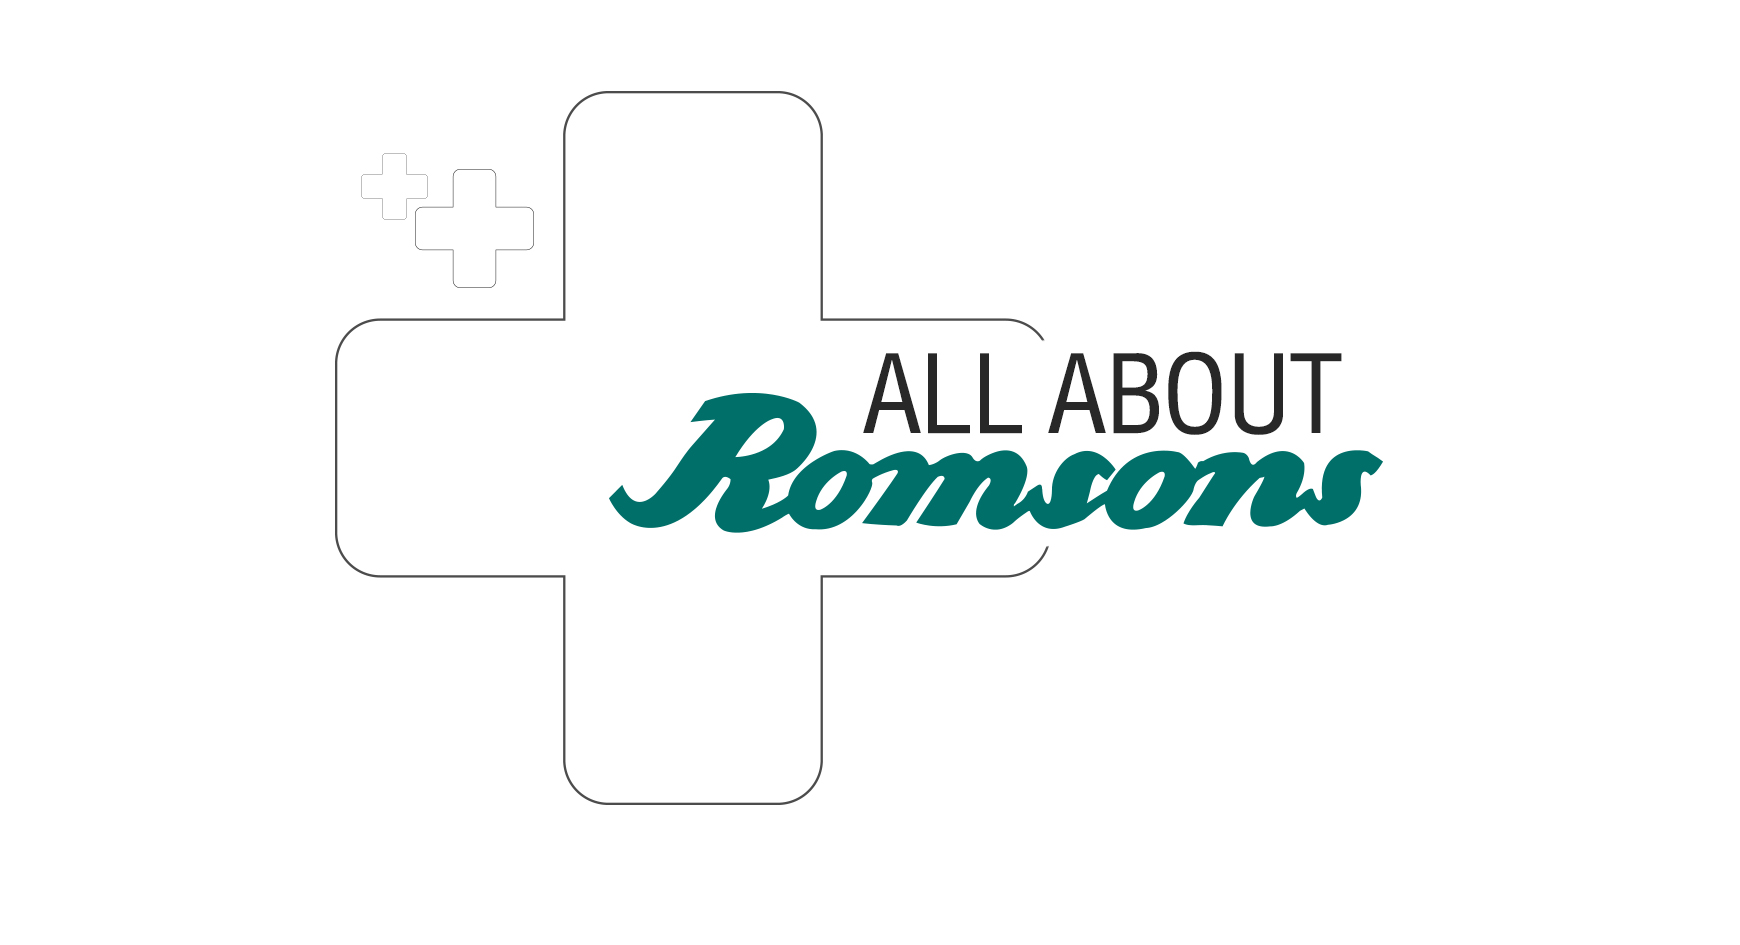 All About Romsons